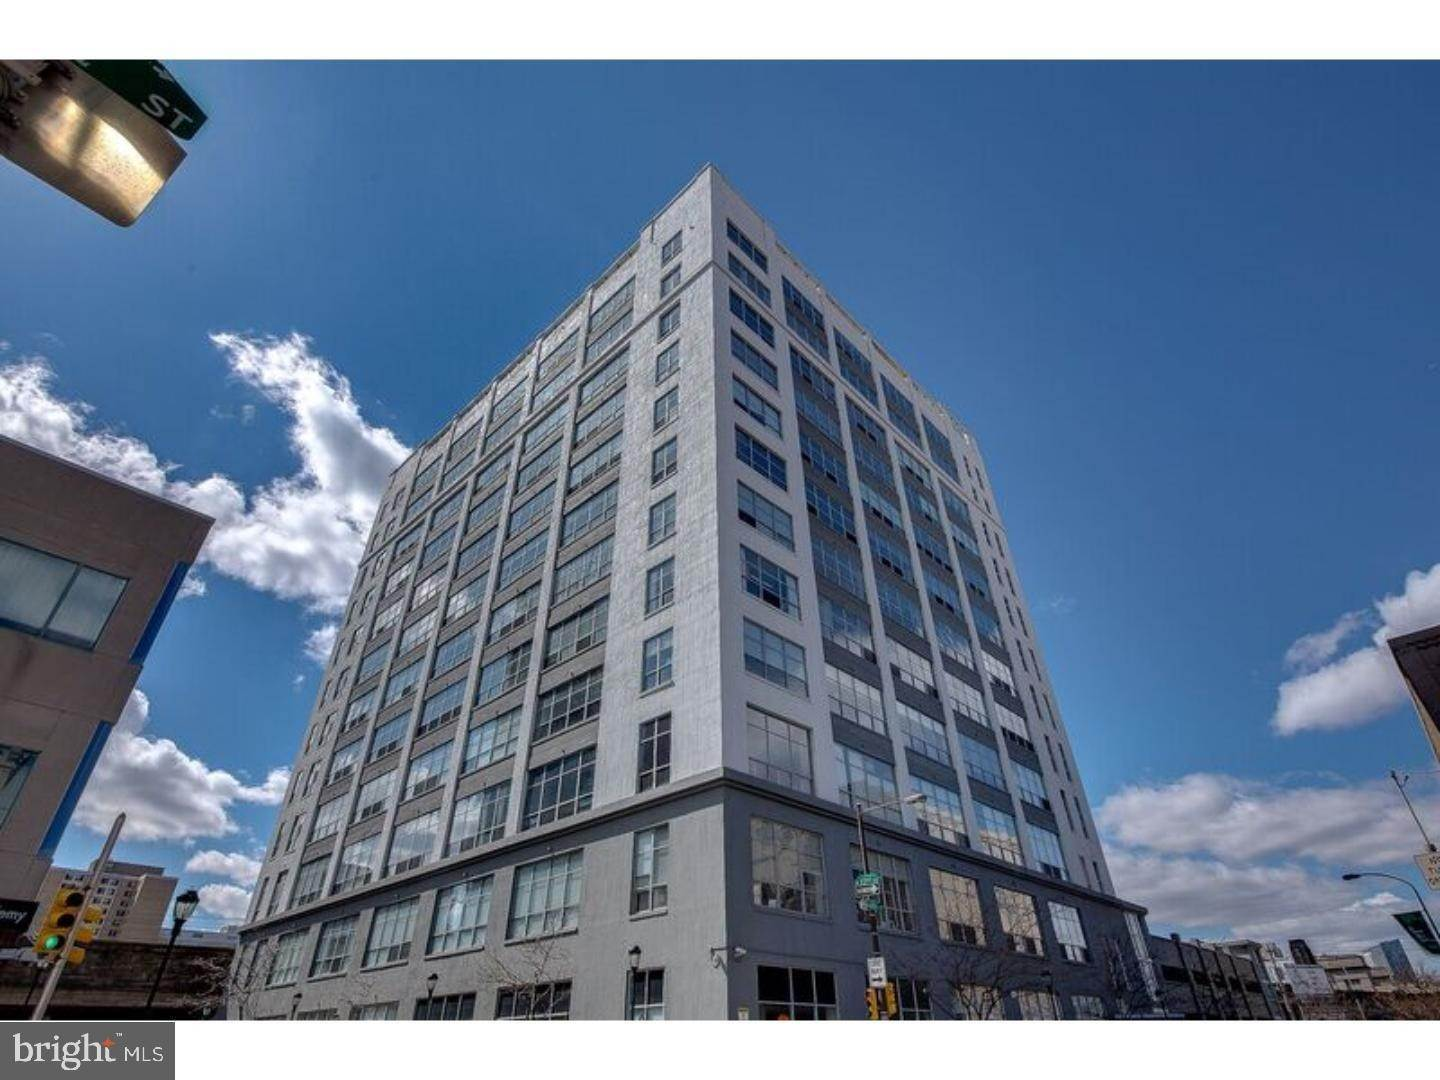 Property for Sale at 2200 ARCH ST #125 Philadelphia, Pennsylvania 19103 United States